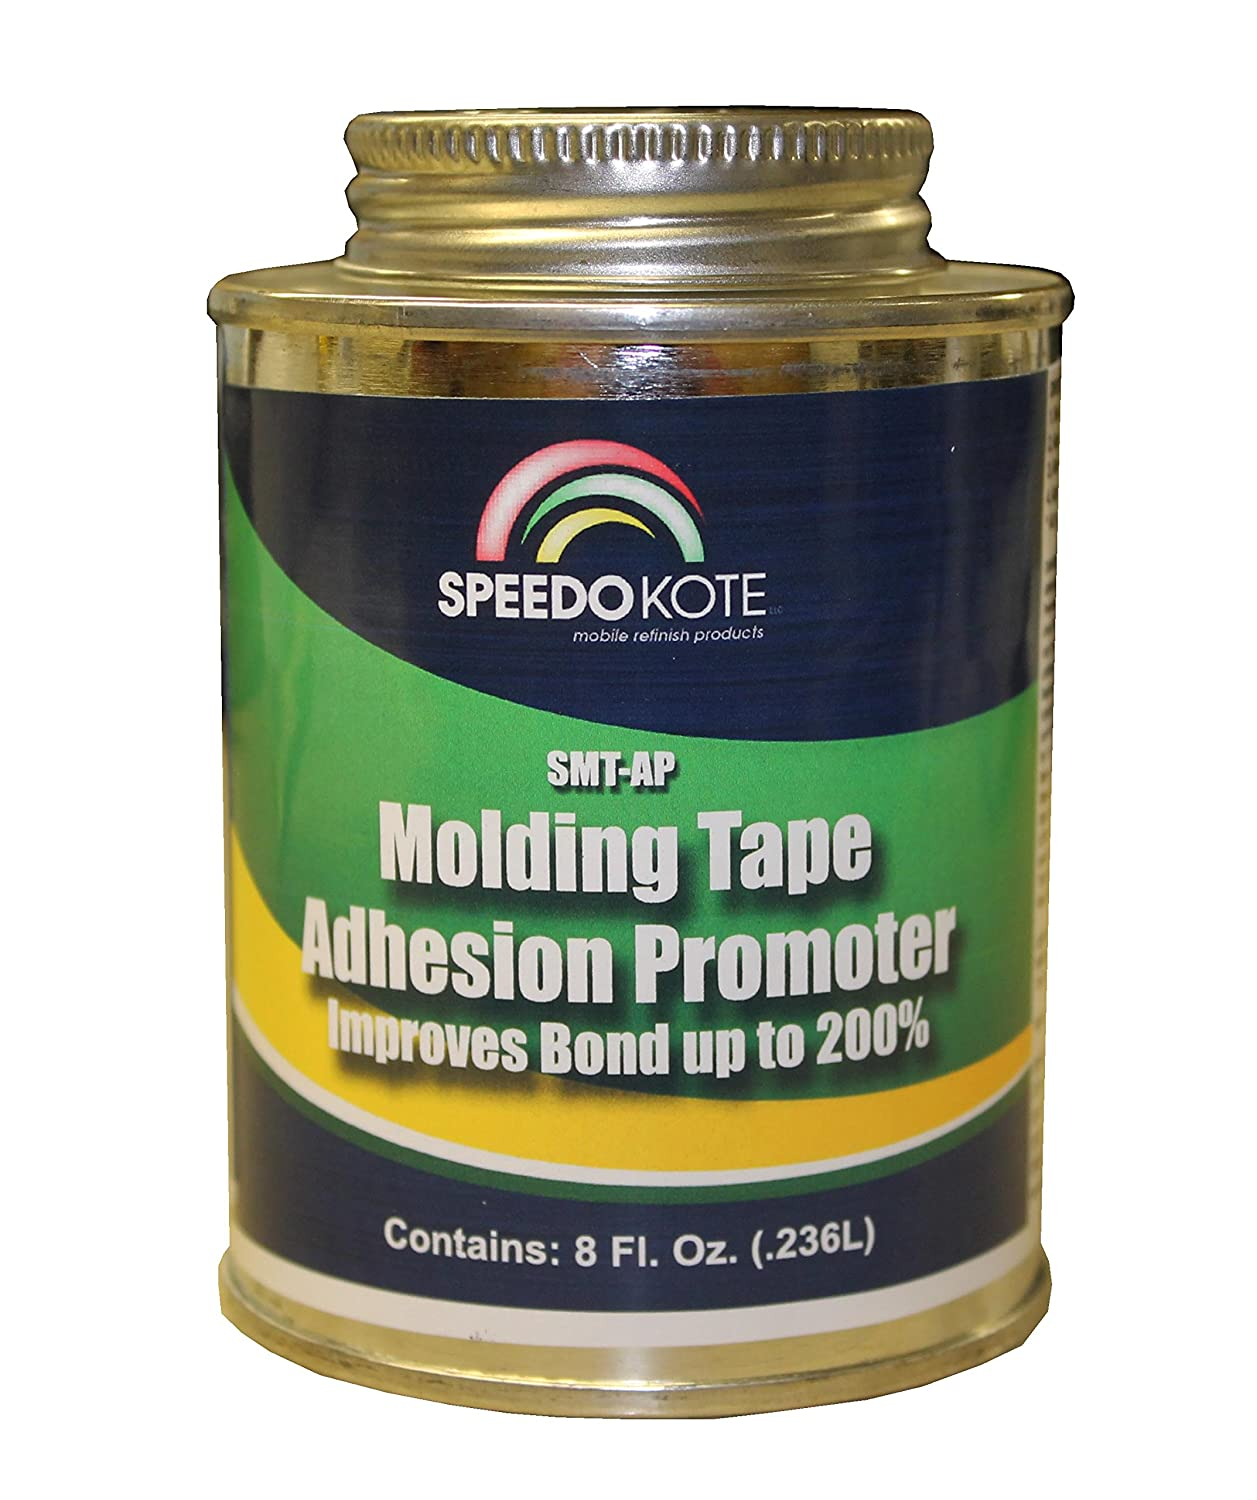 Adhesion promoter for double sided Tape on Side Moldings and Emblems 8oz. SMT-AP Speedokote